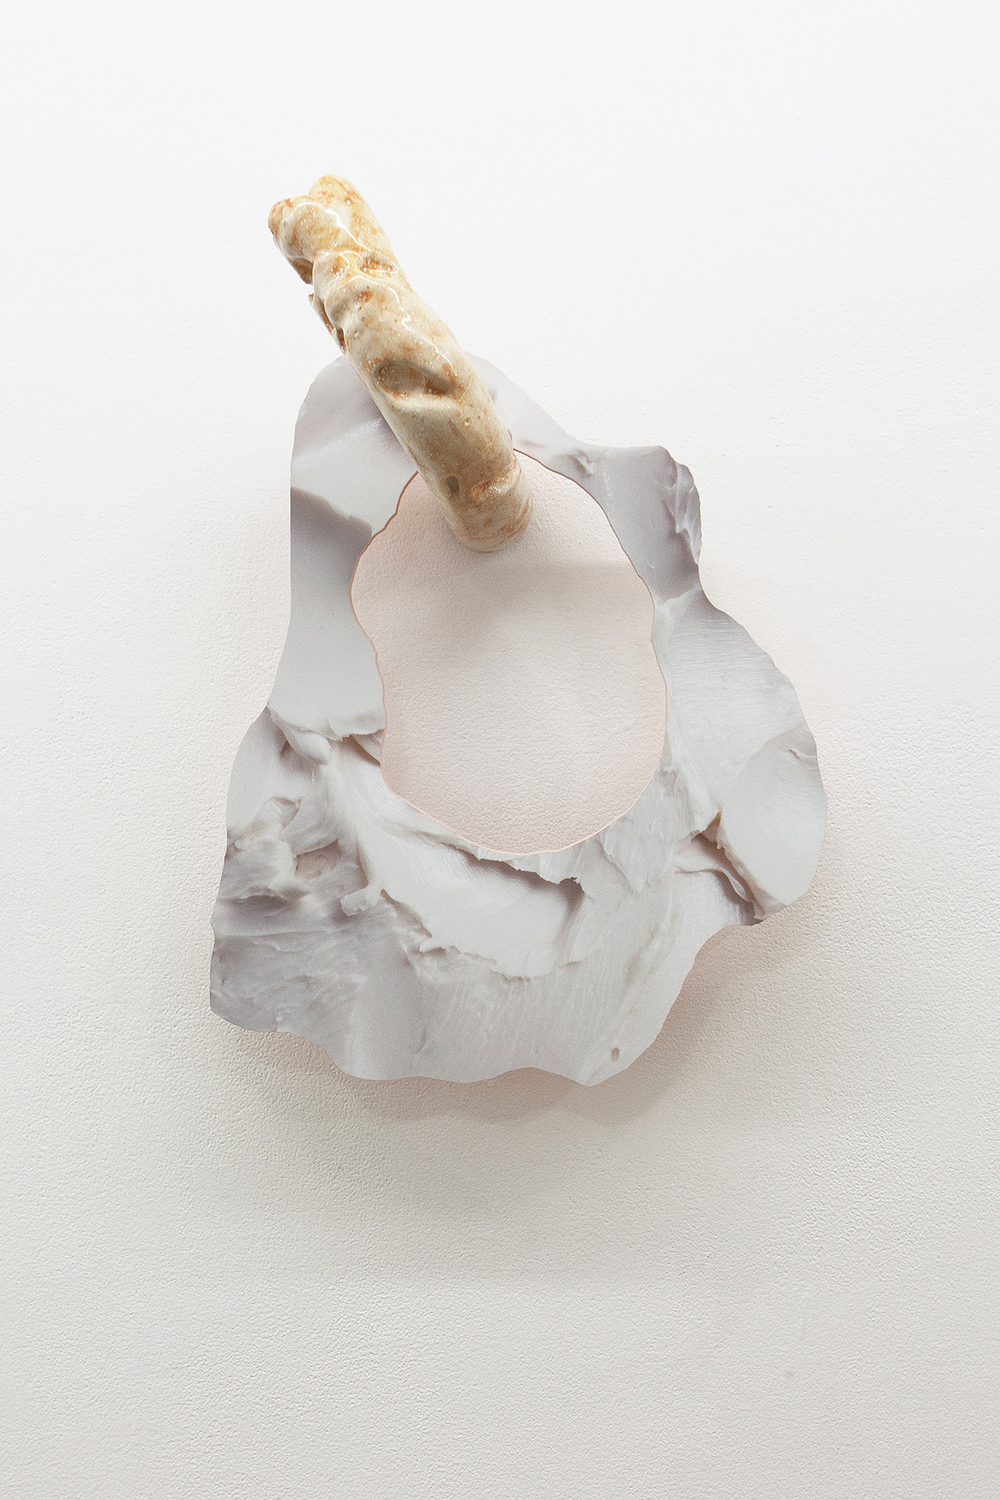 Soft Inquiry IV   2015  Ceramic and archival inkjet print on PVC  21 x 16 x 8.5 cm/ 53.3 x 41 x 21.6 cm